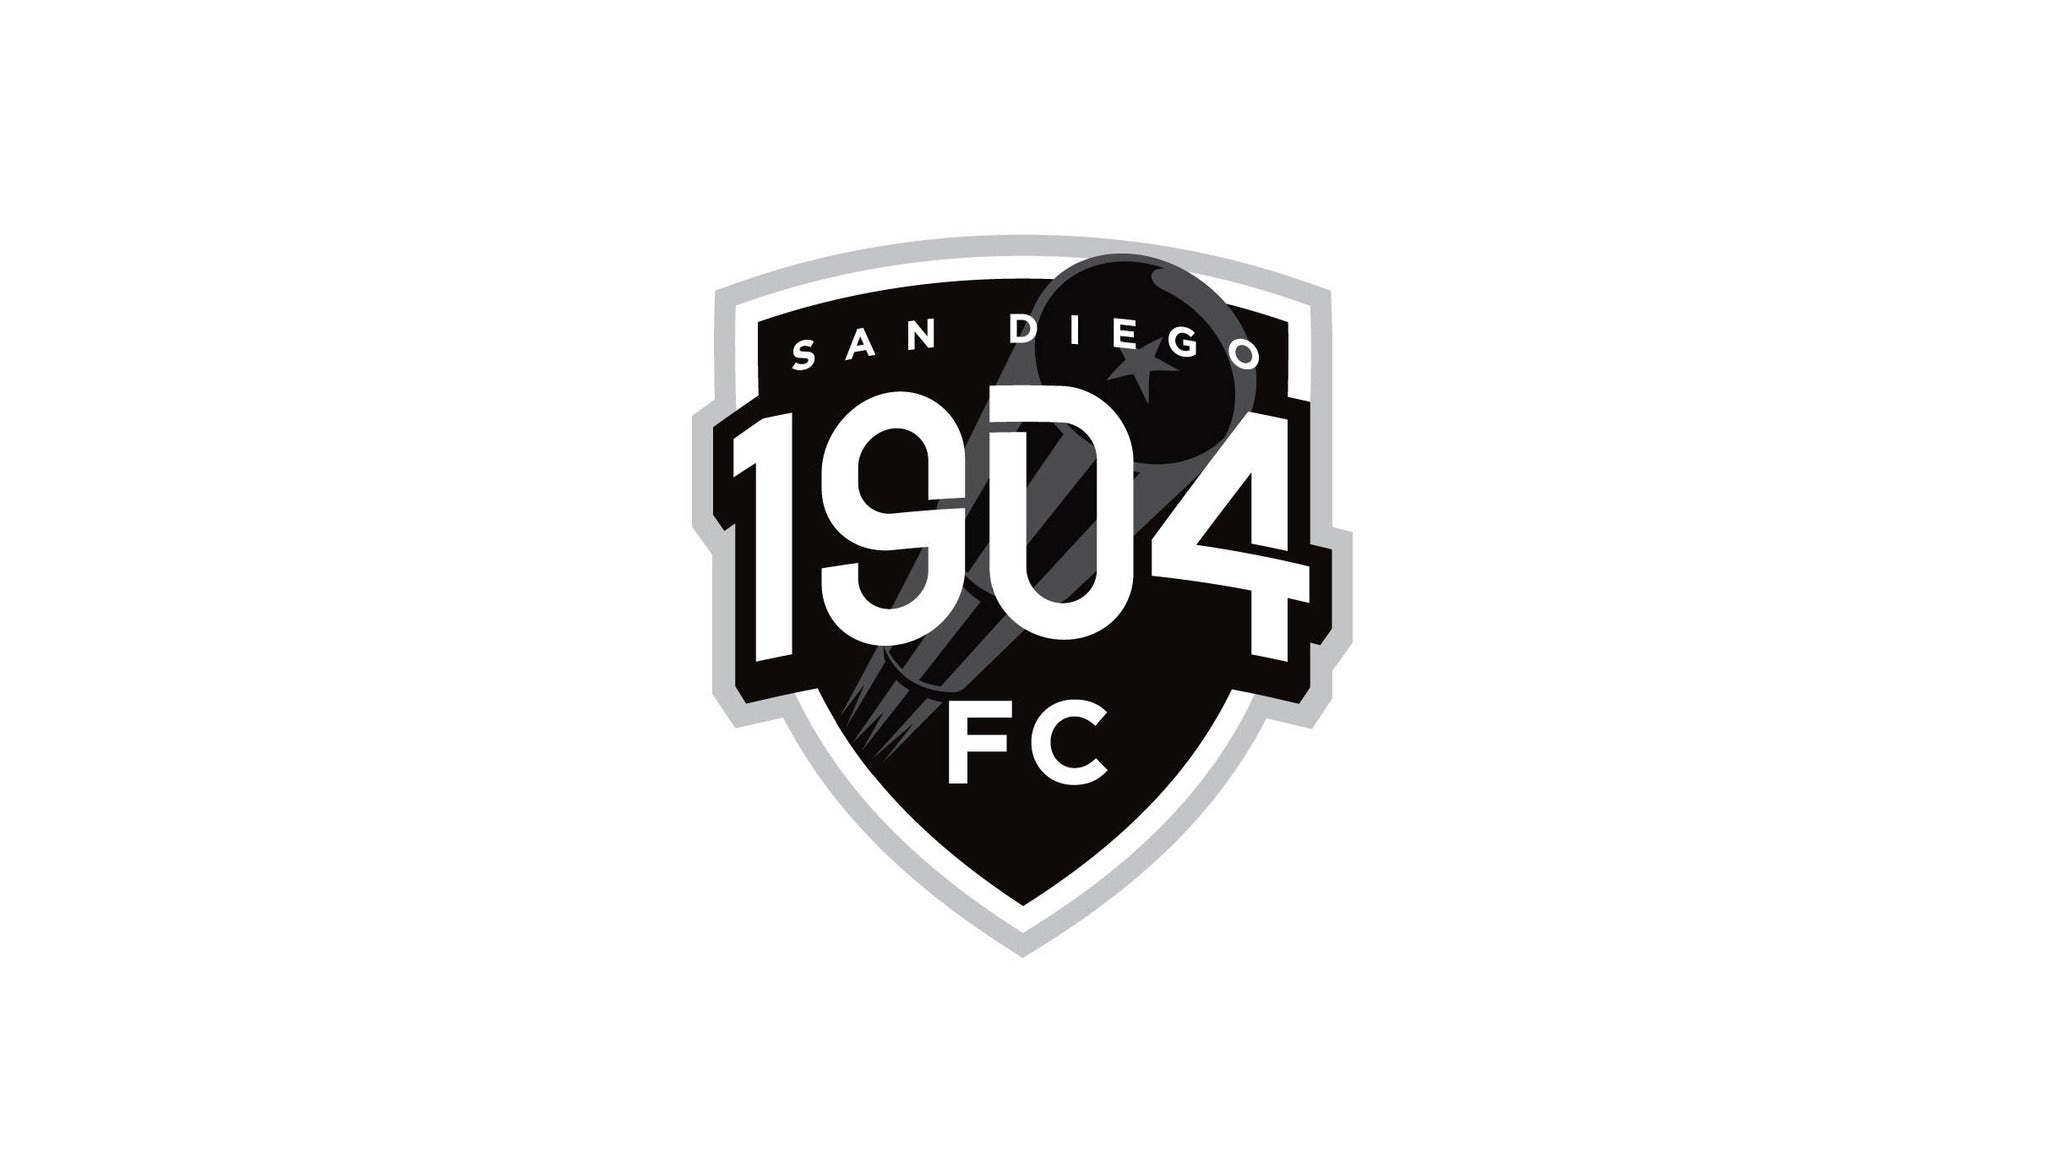 San Diego 1904 FC vs. Los Angeles Force